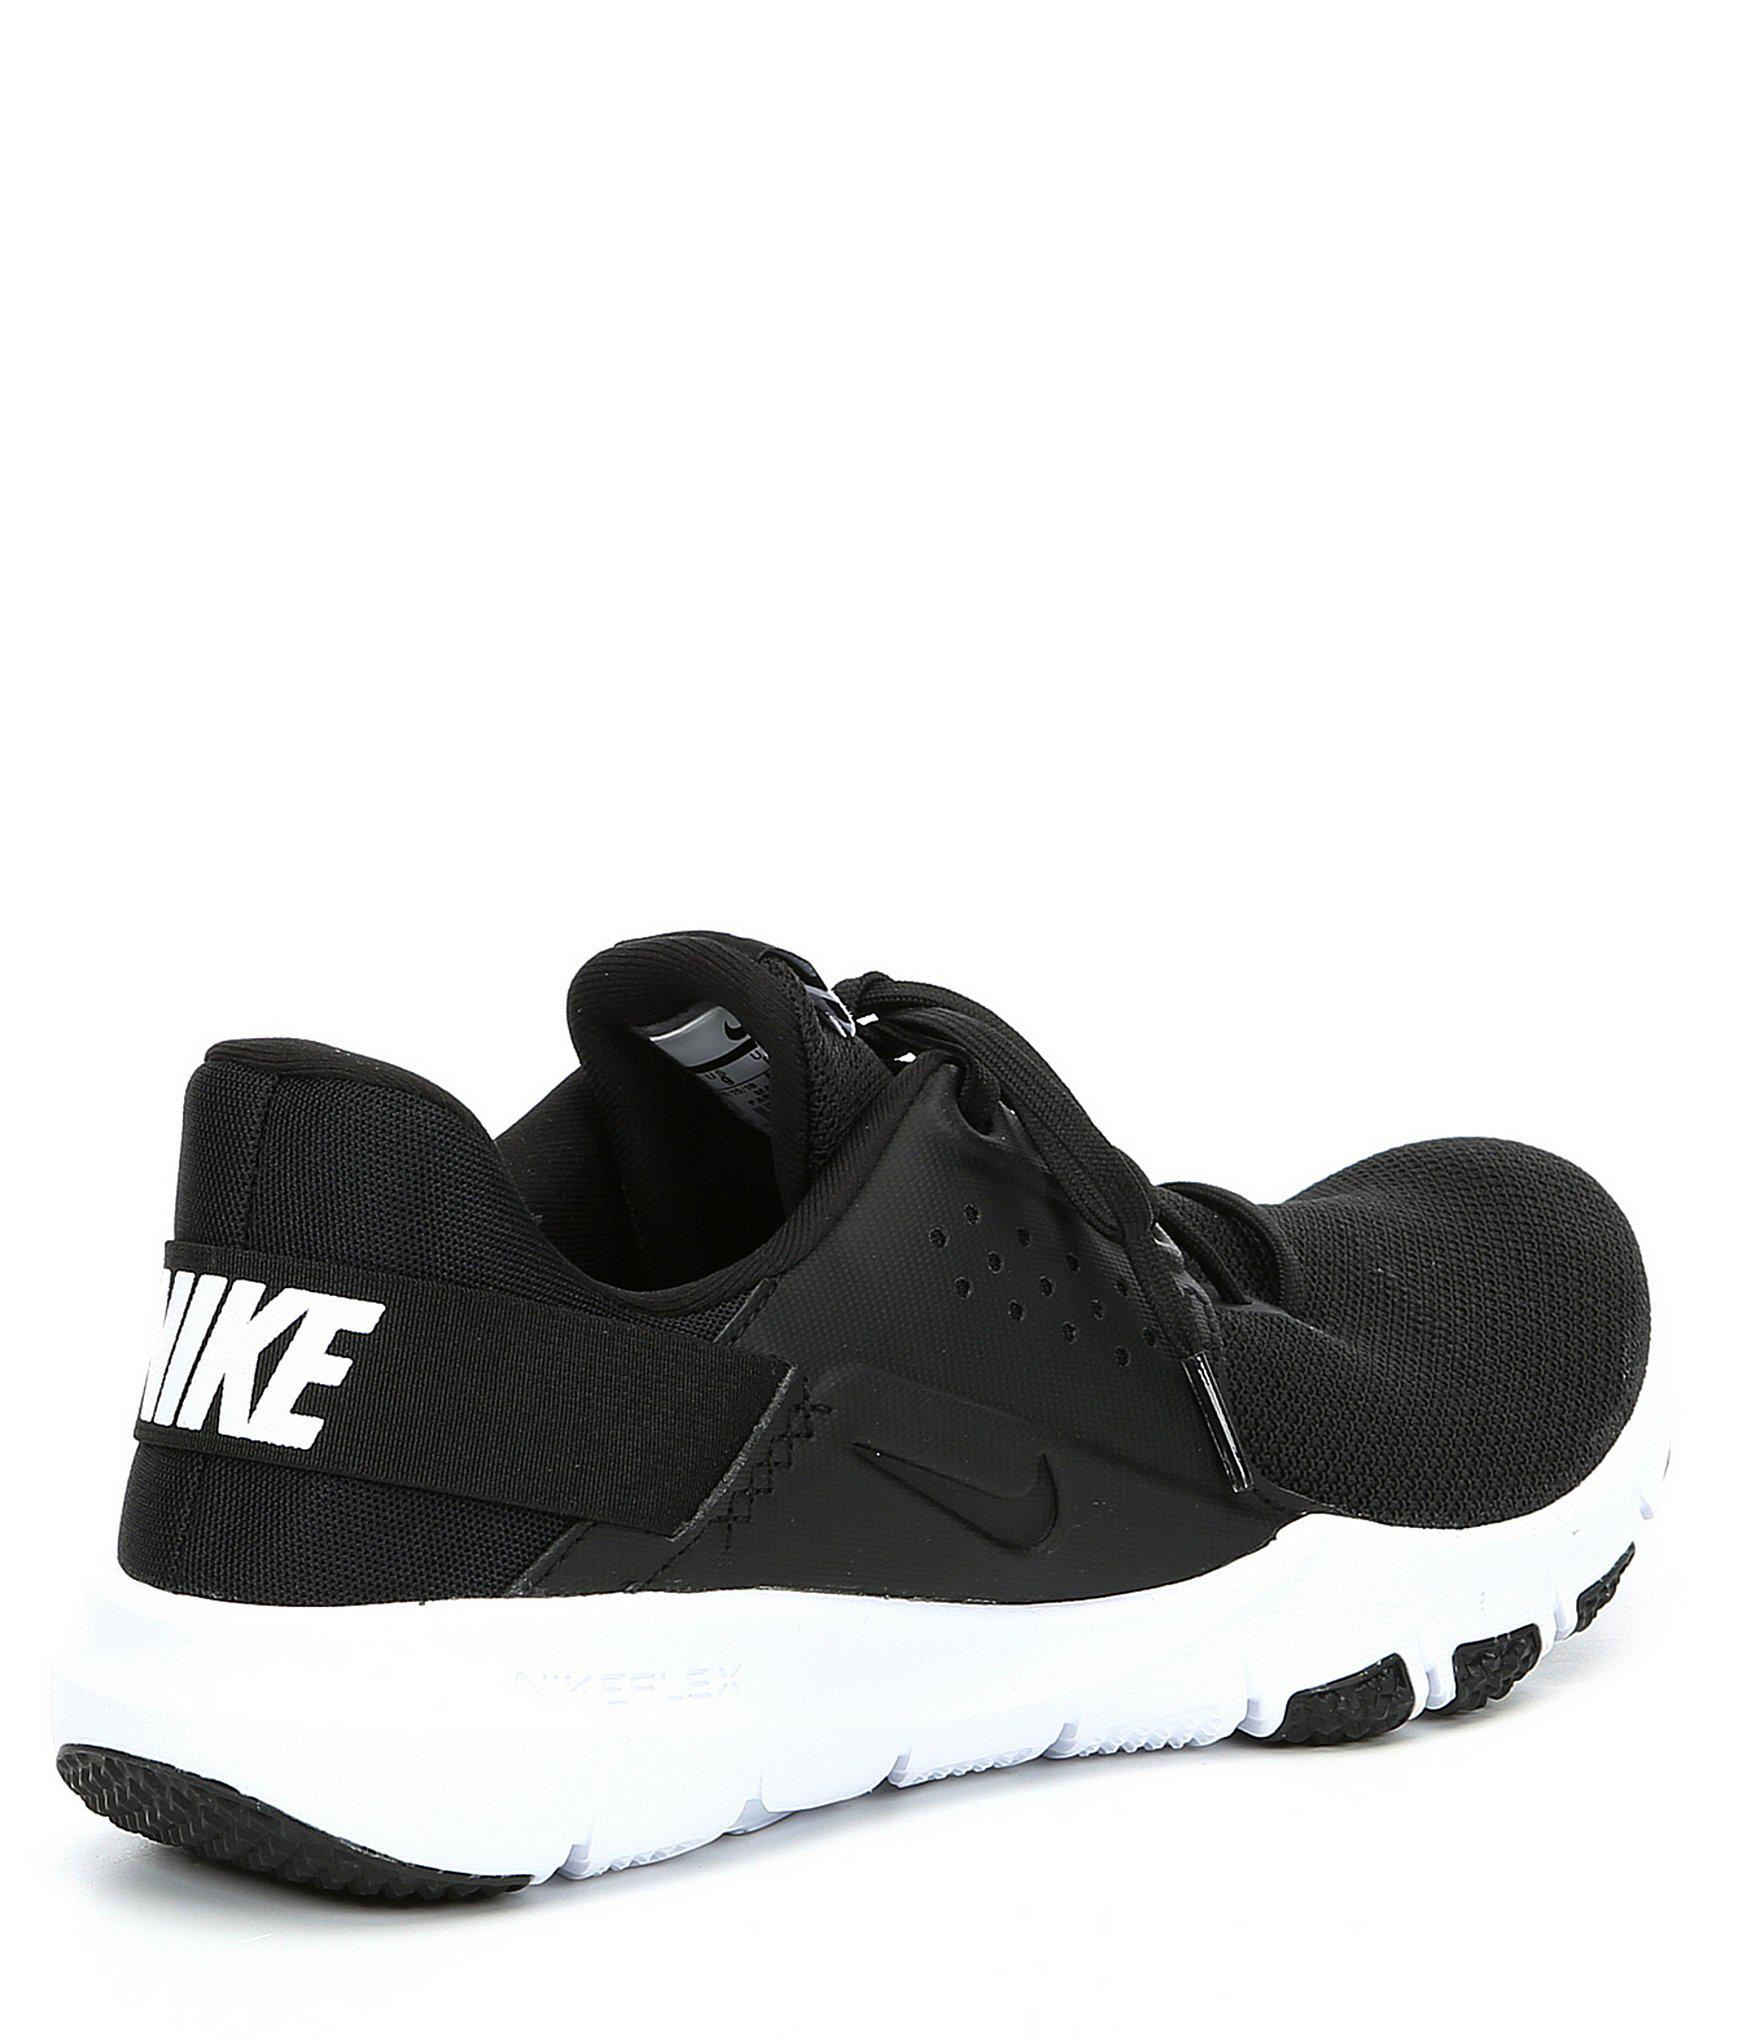 48433c1f9202 Nike - Black Men s Flex Control Tr 3 Training Shoe for Men - Lyst. View  fullscreen